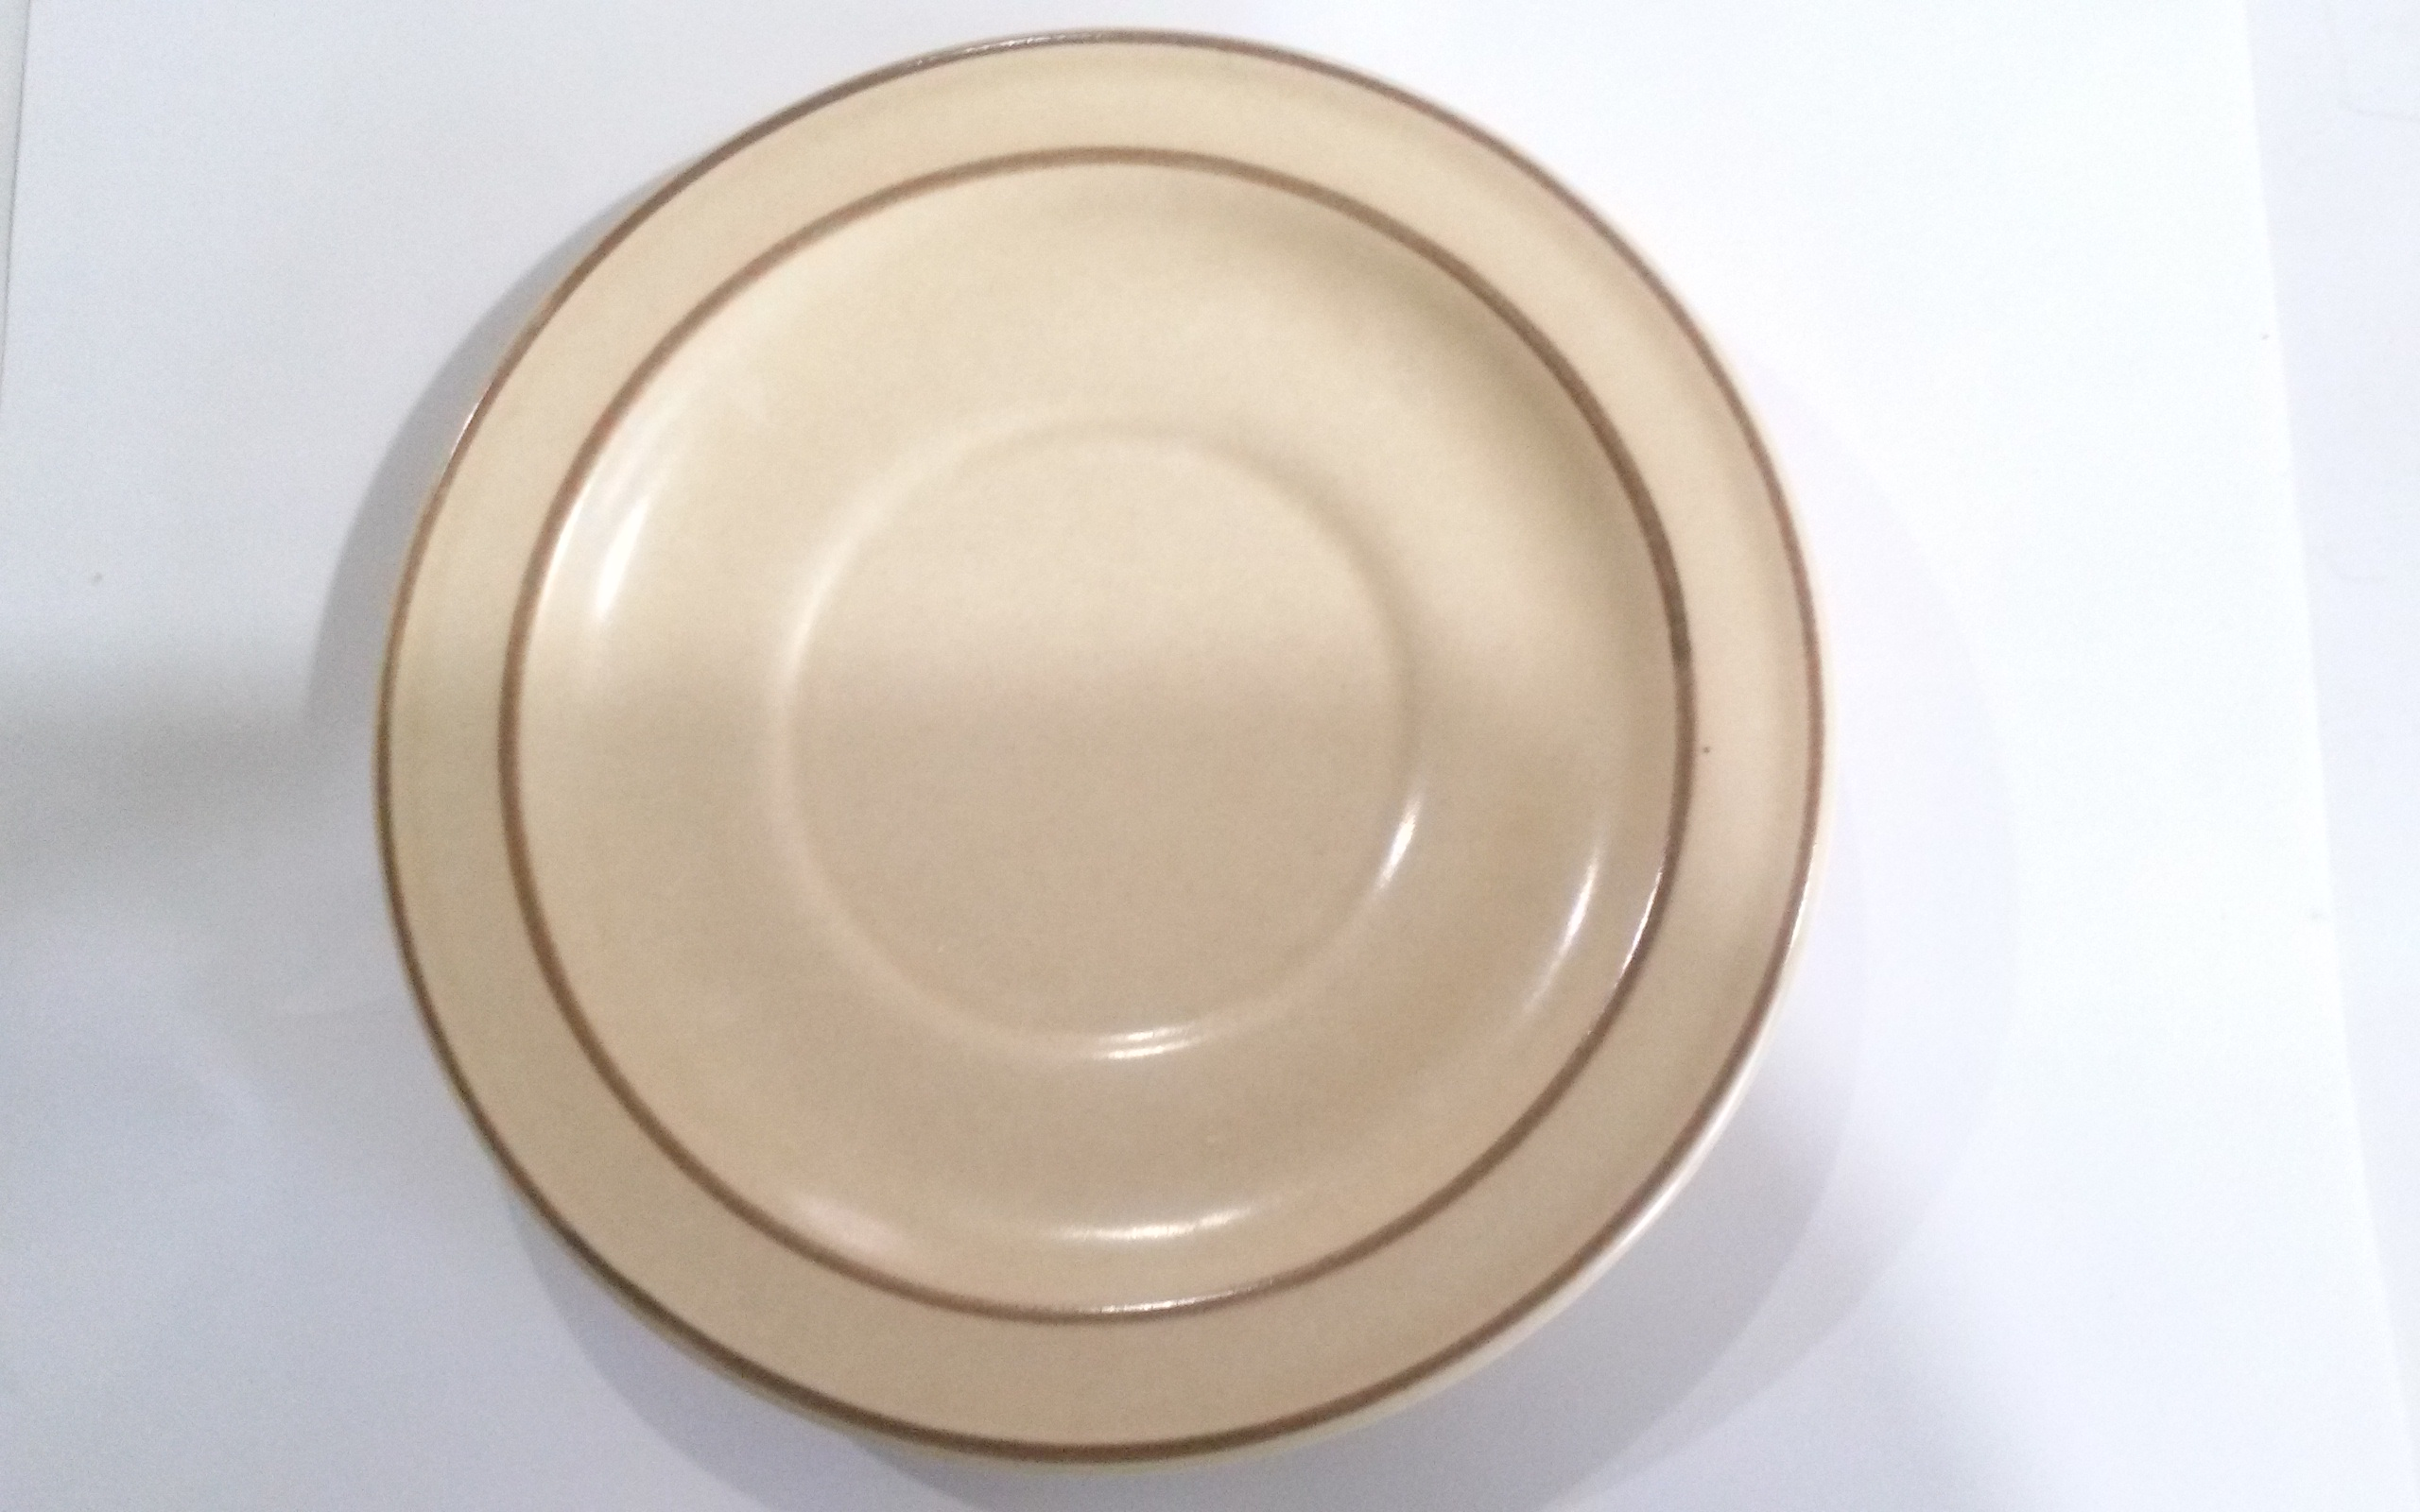 "Pfaltzgraff Village Tan and Brown Saucer 6.5"" Diameter"